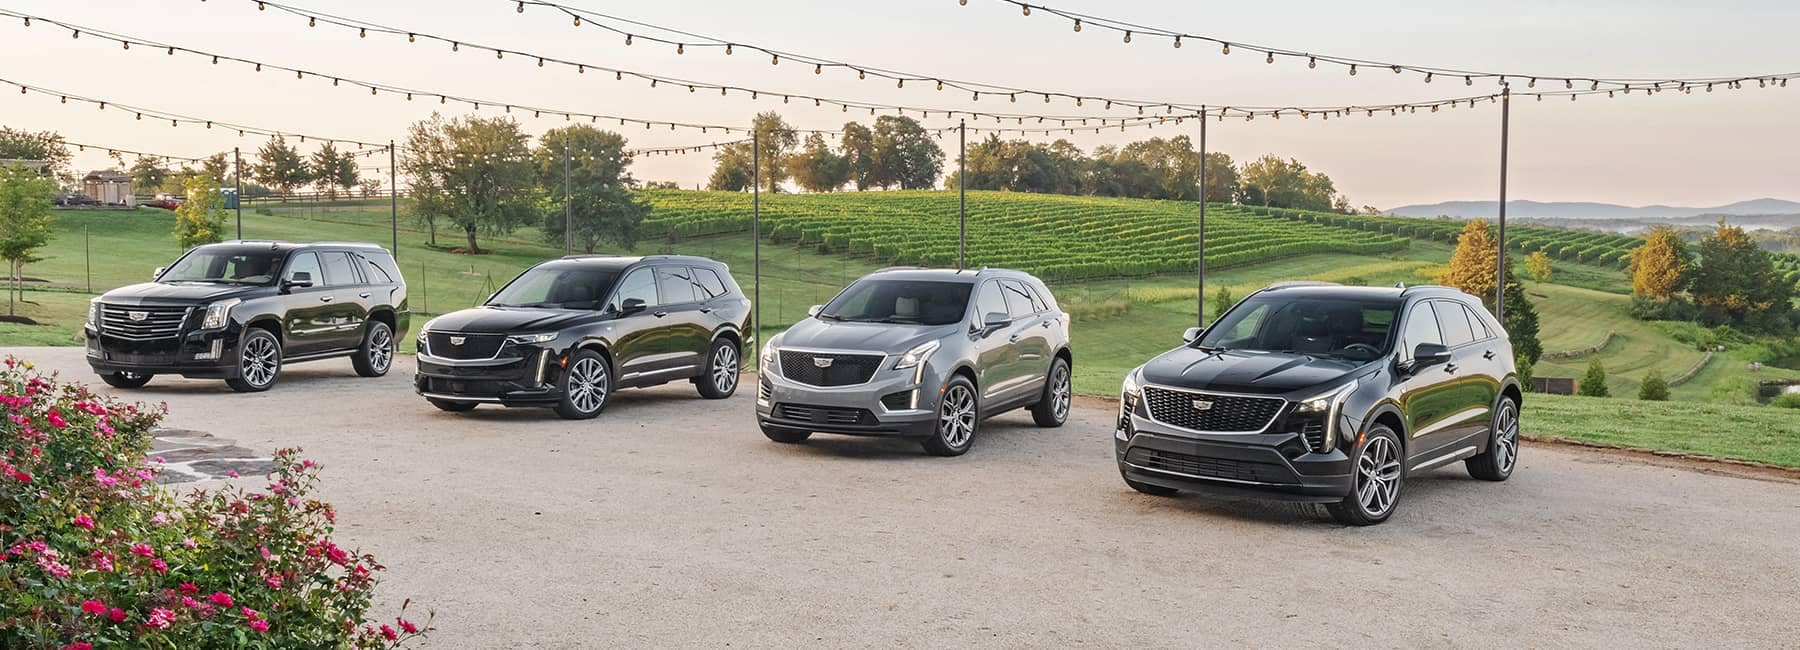 Four Cadillacs Lined up in a row